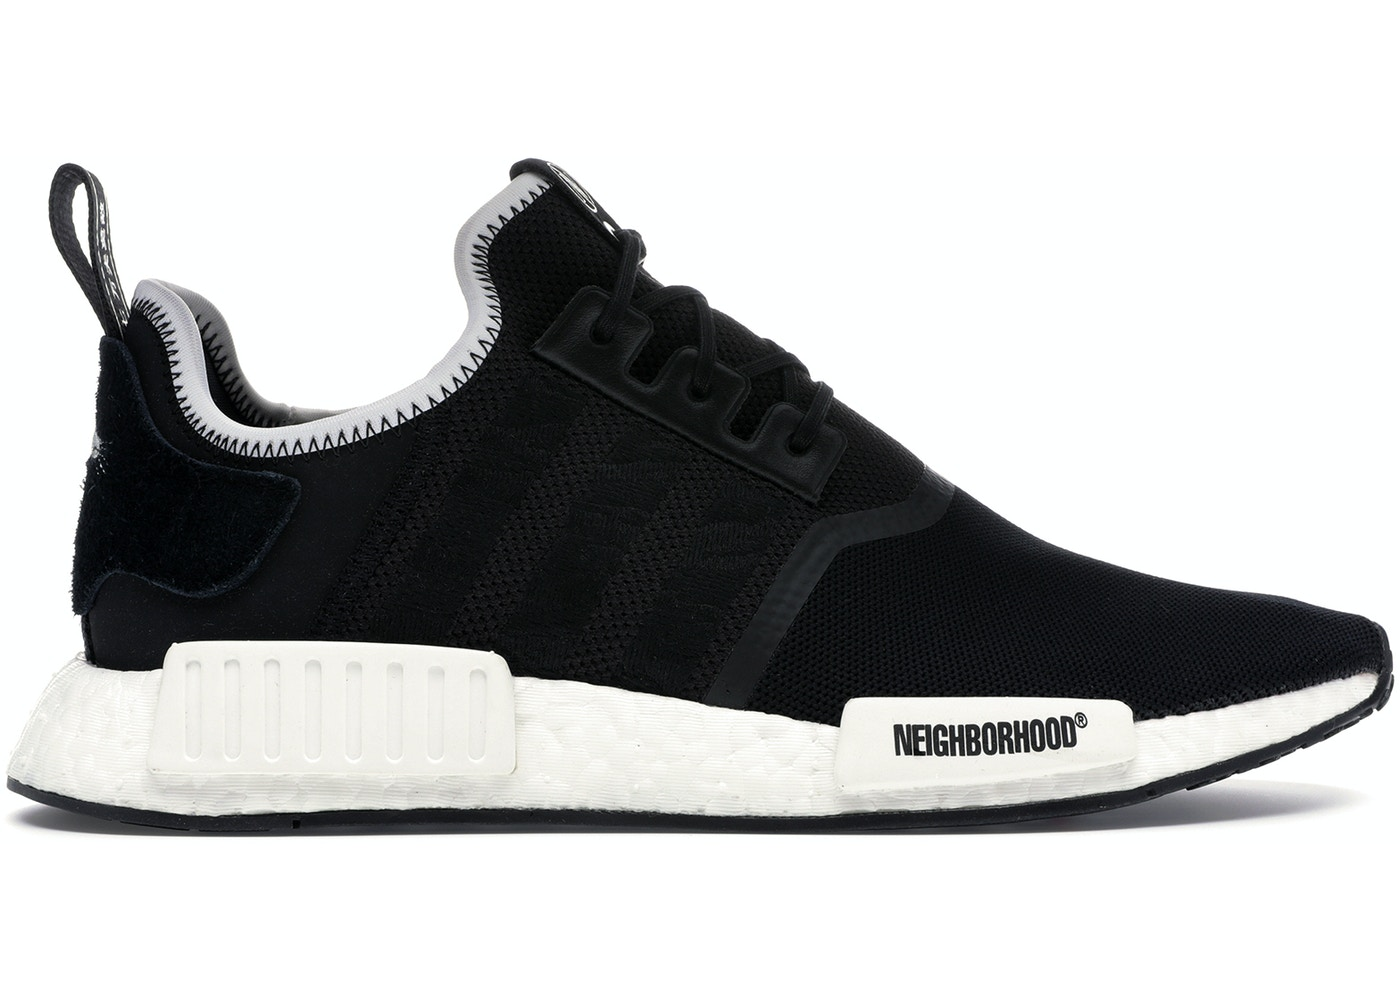 new concept 0e496 1d84e adidas NMD R1 Neighborhood x Invincible